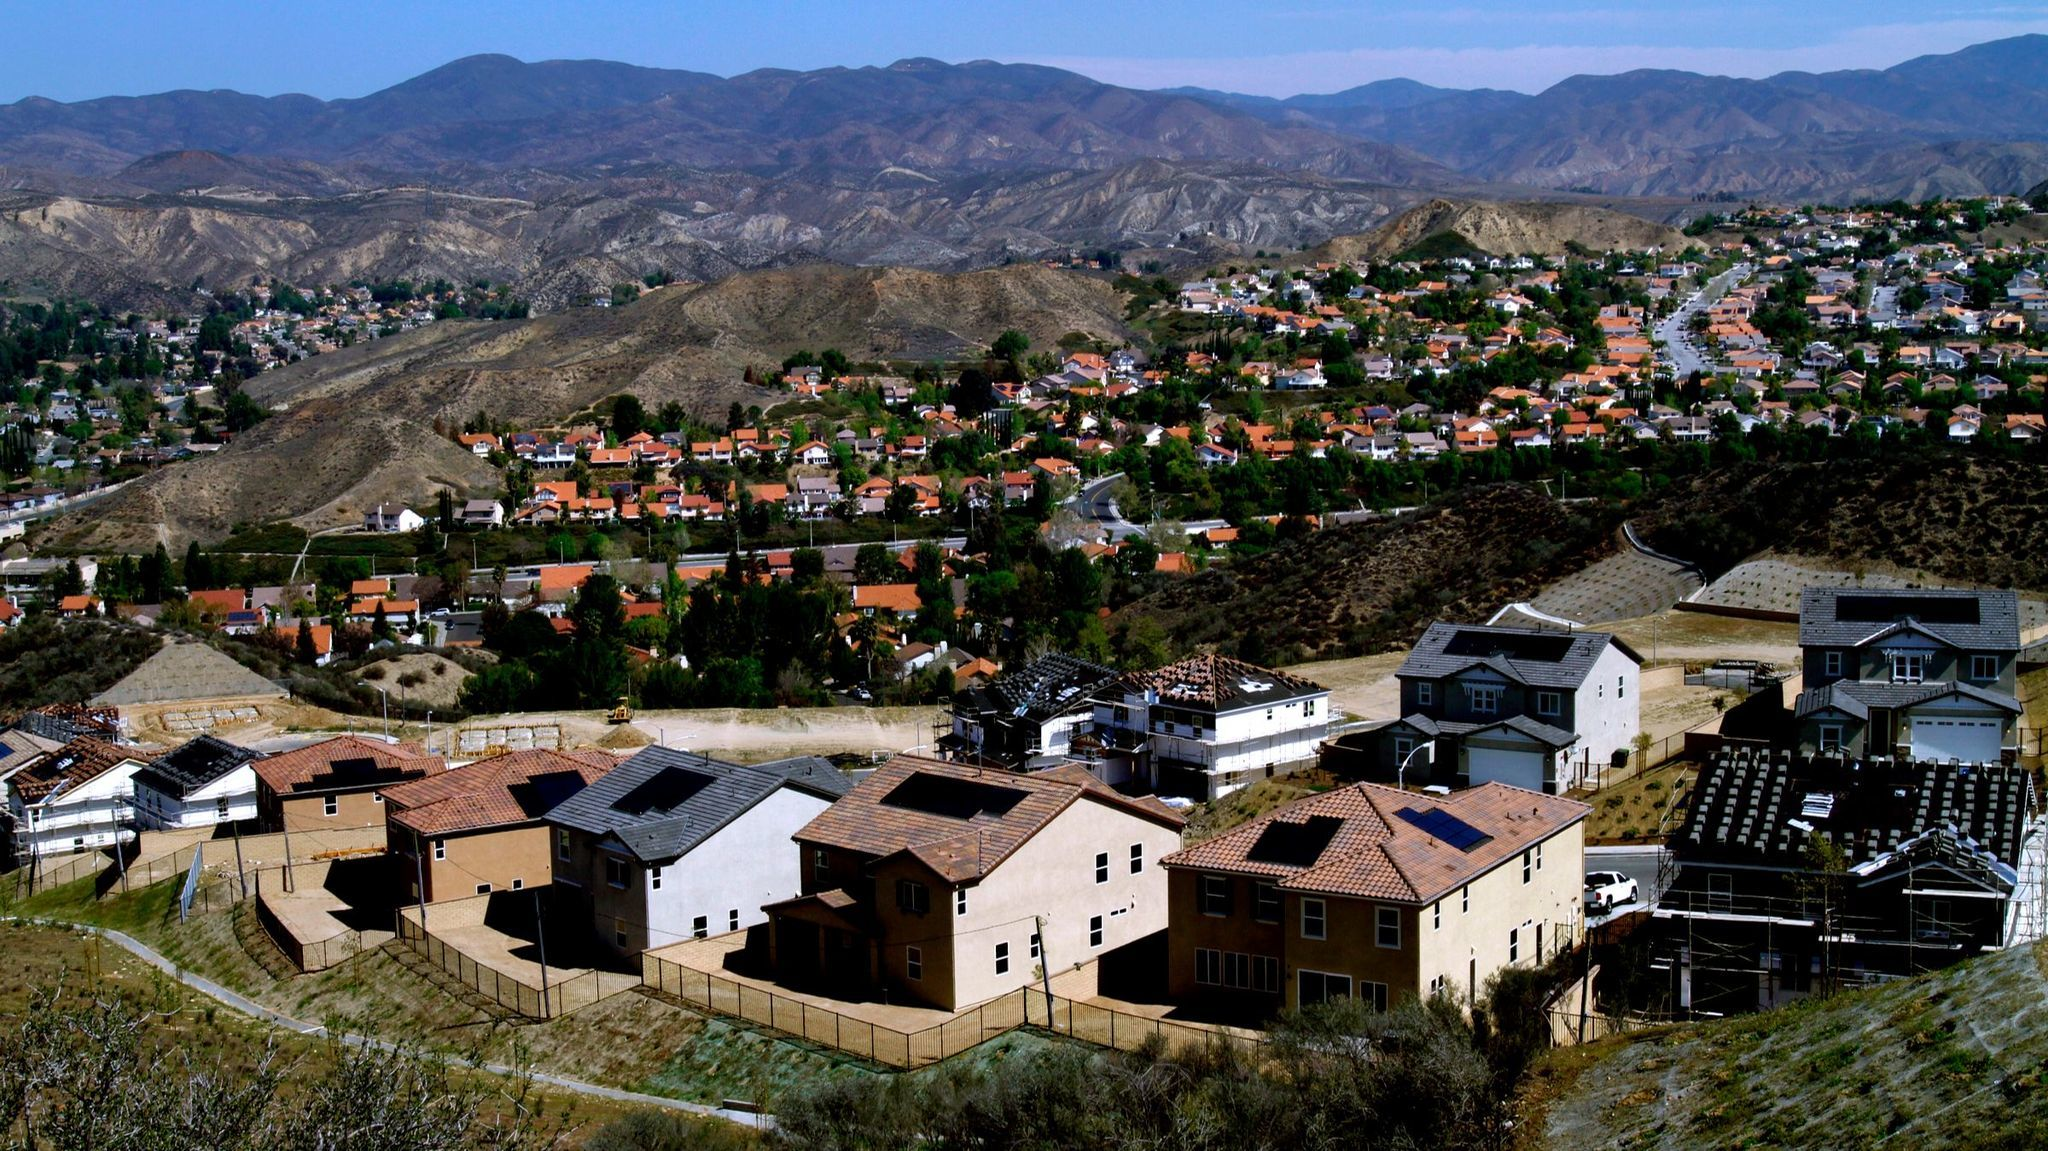 Homes under construction in Santa Clarita.